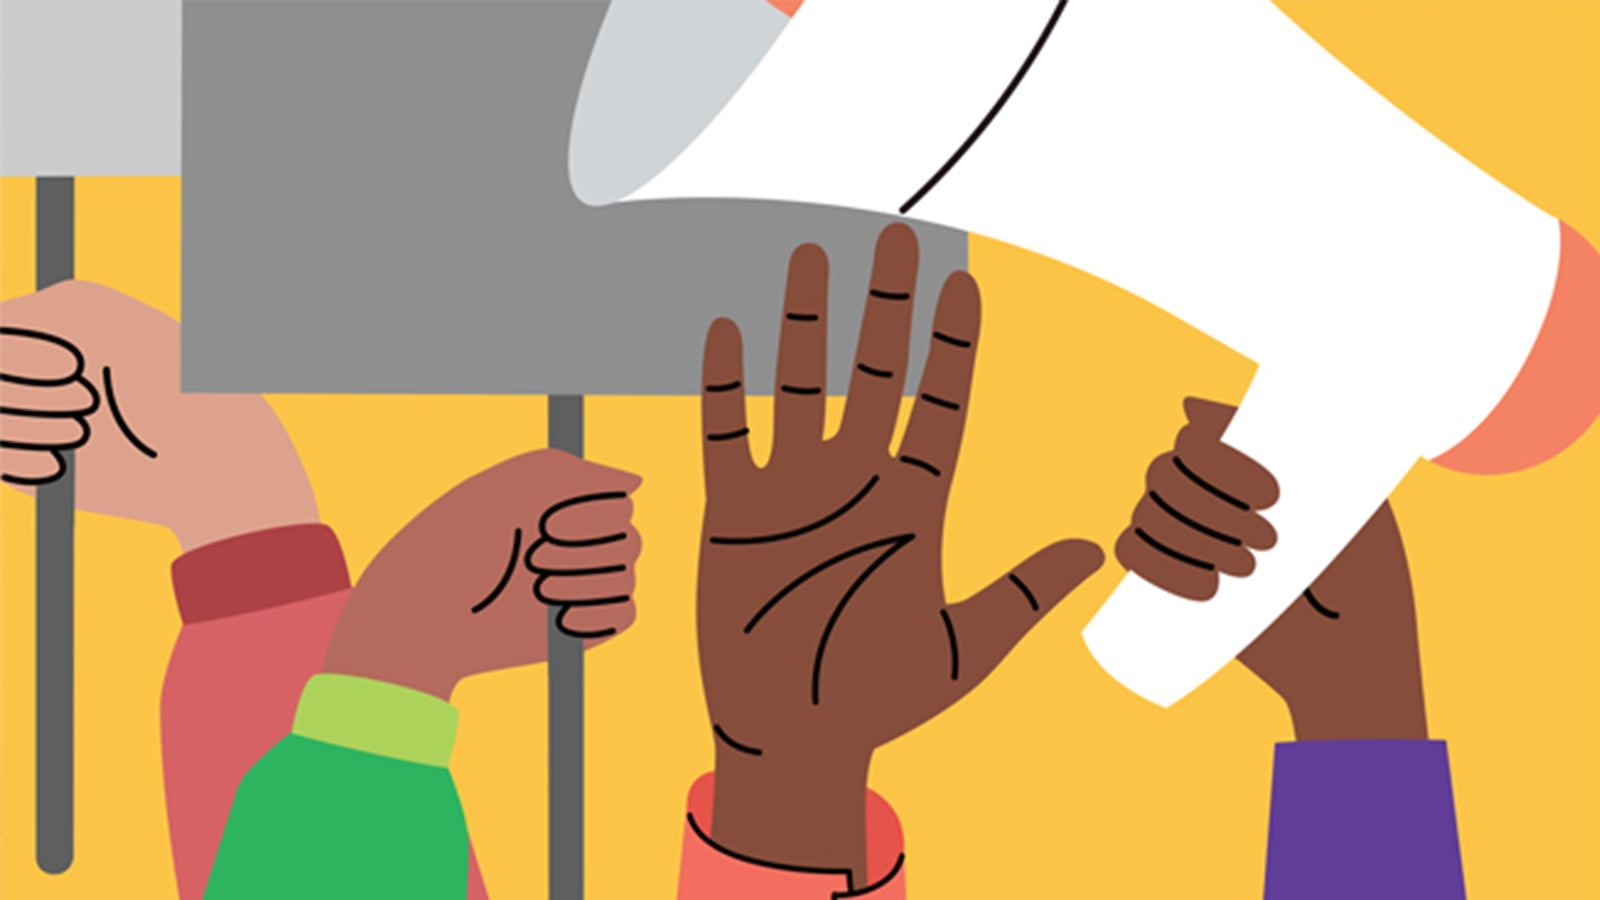 Illustration of hands holding signs and a megaphone